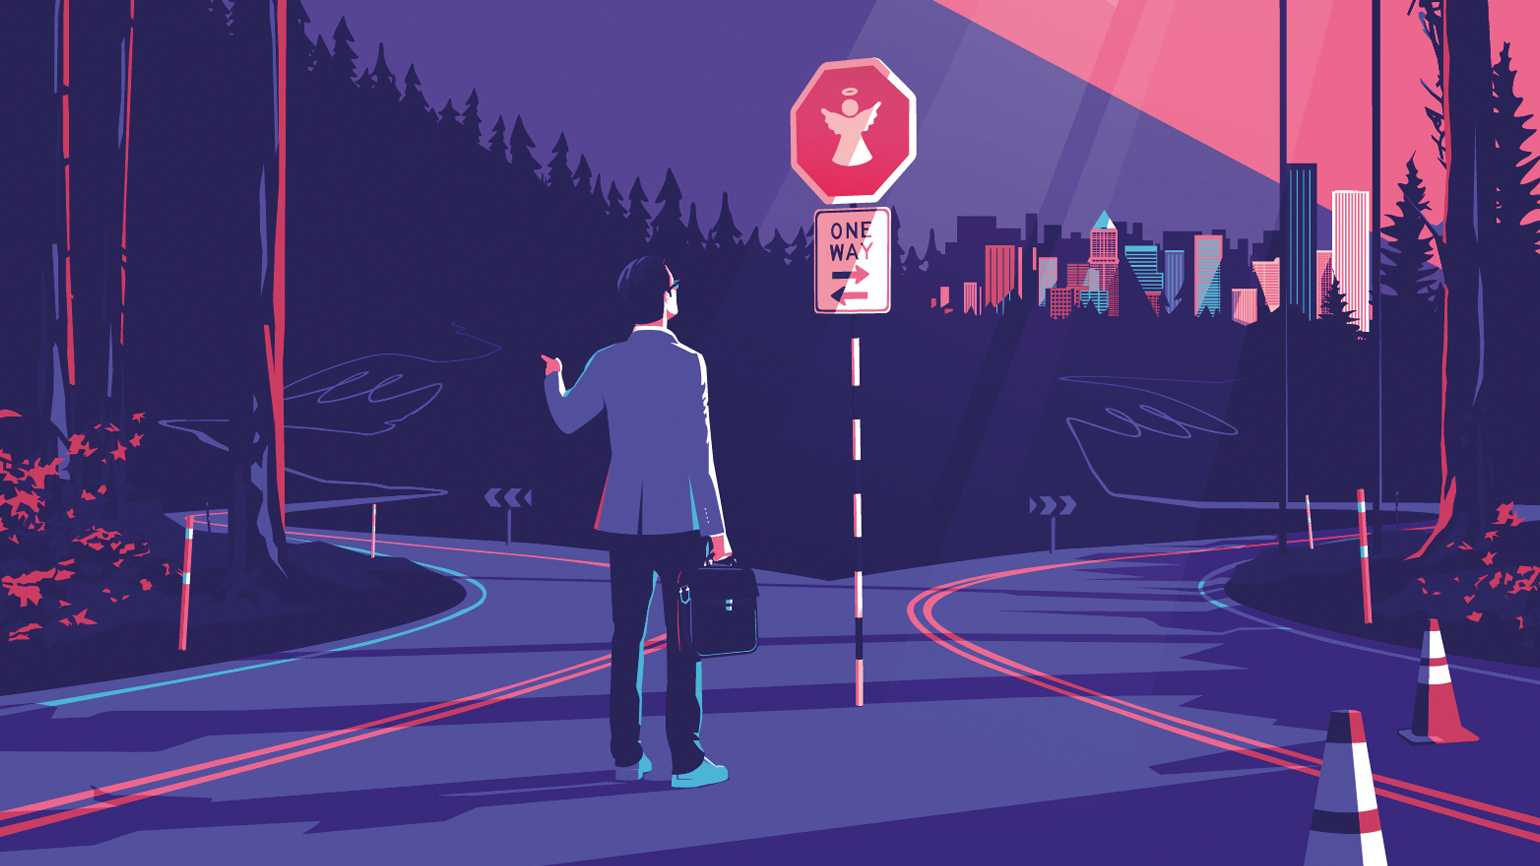 A businessman looking at a stop sign with an angel figure at a forked road.